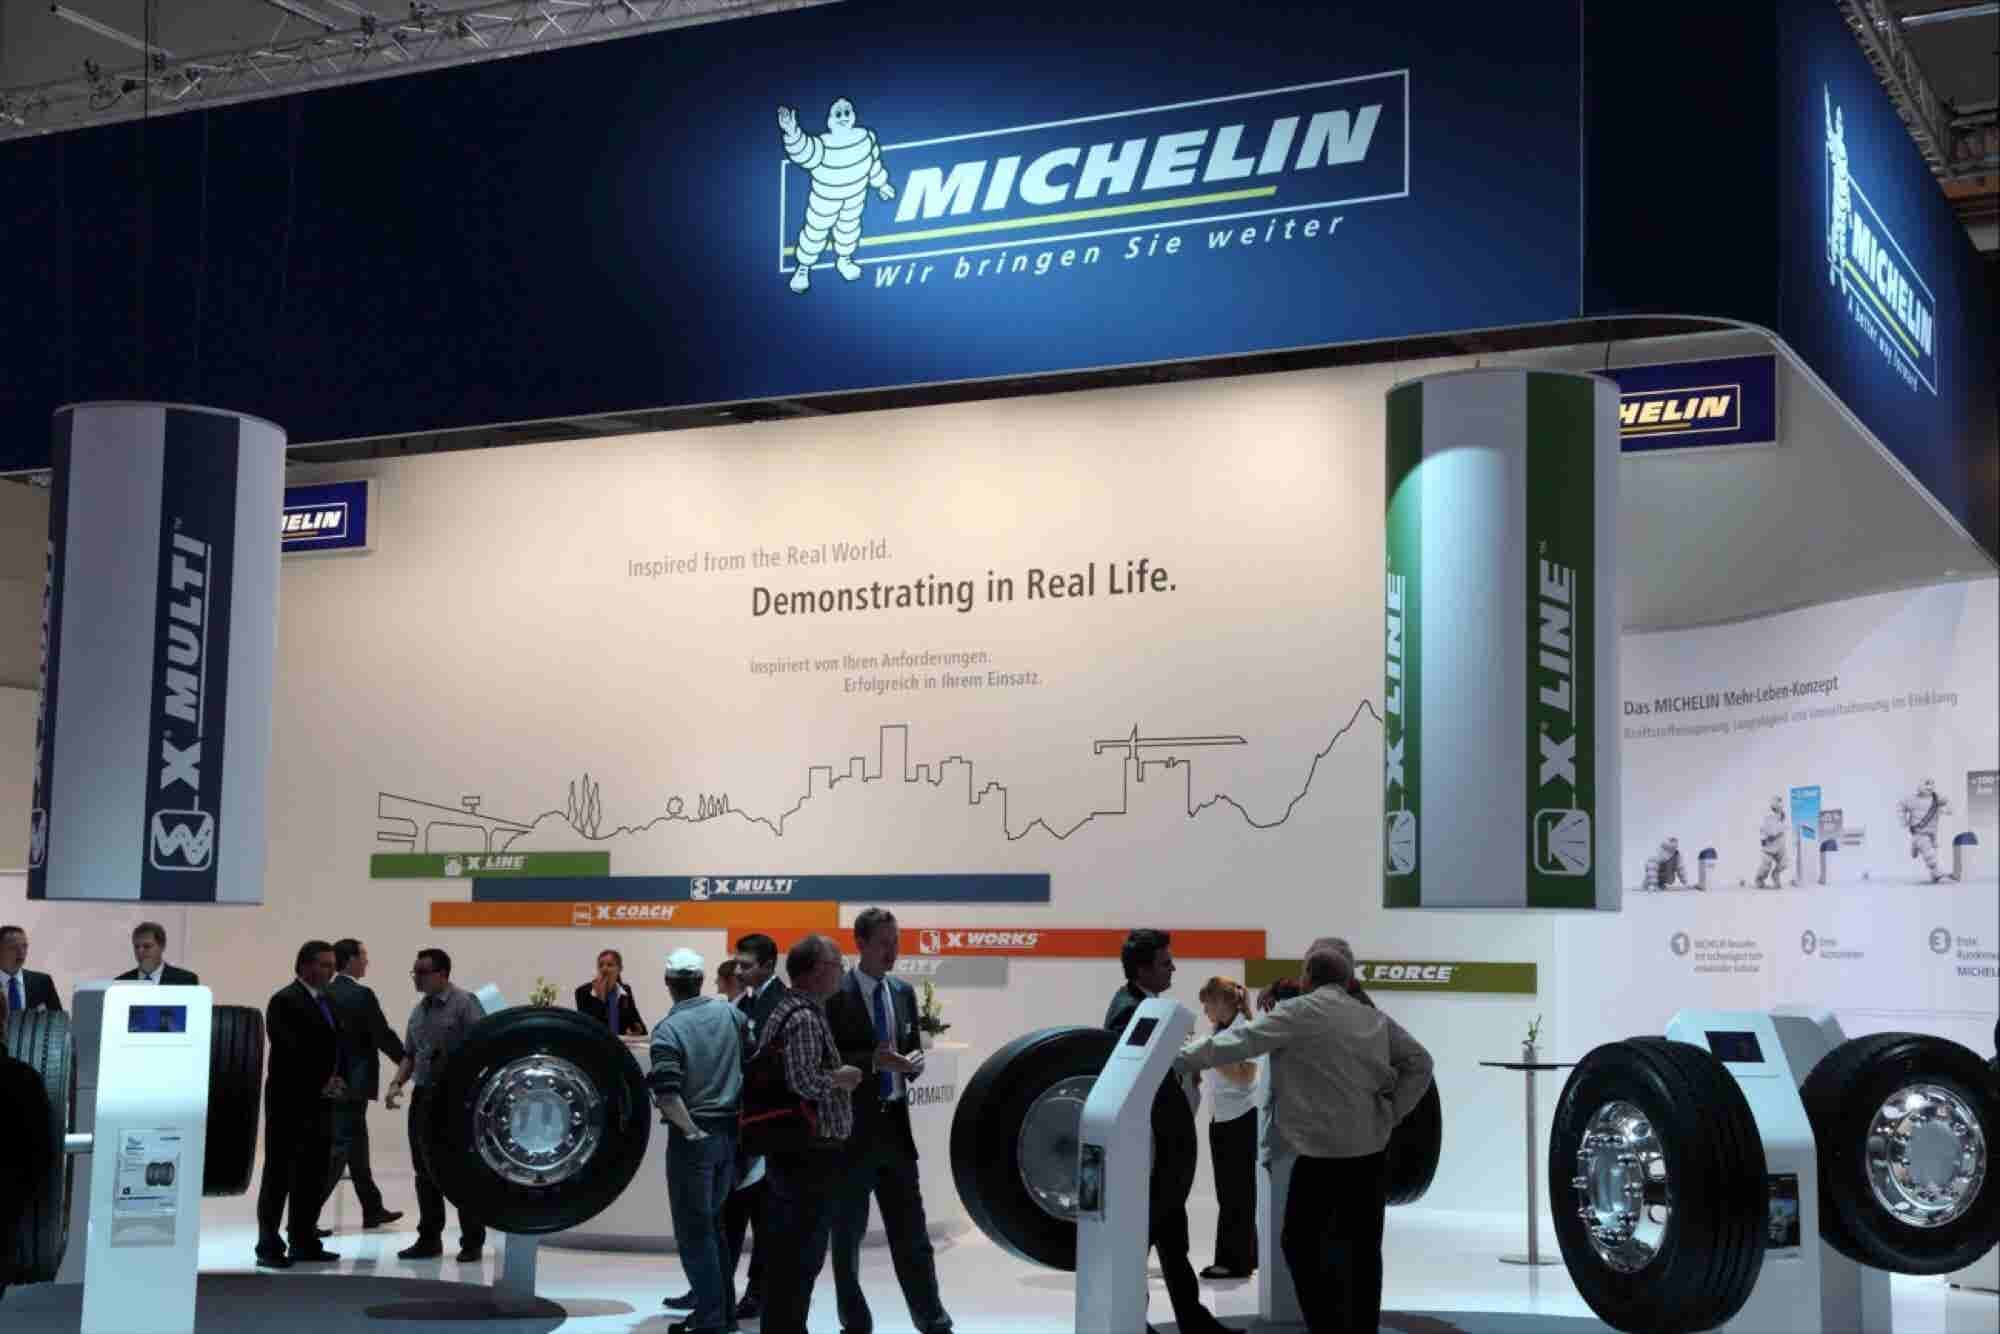 Content Marketing Is Not a New Fad. The Michelin Brothers Used It 100...